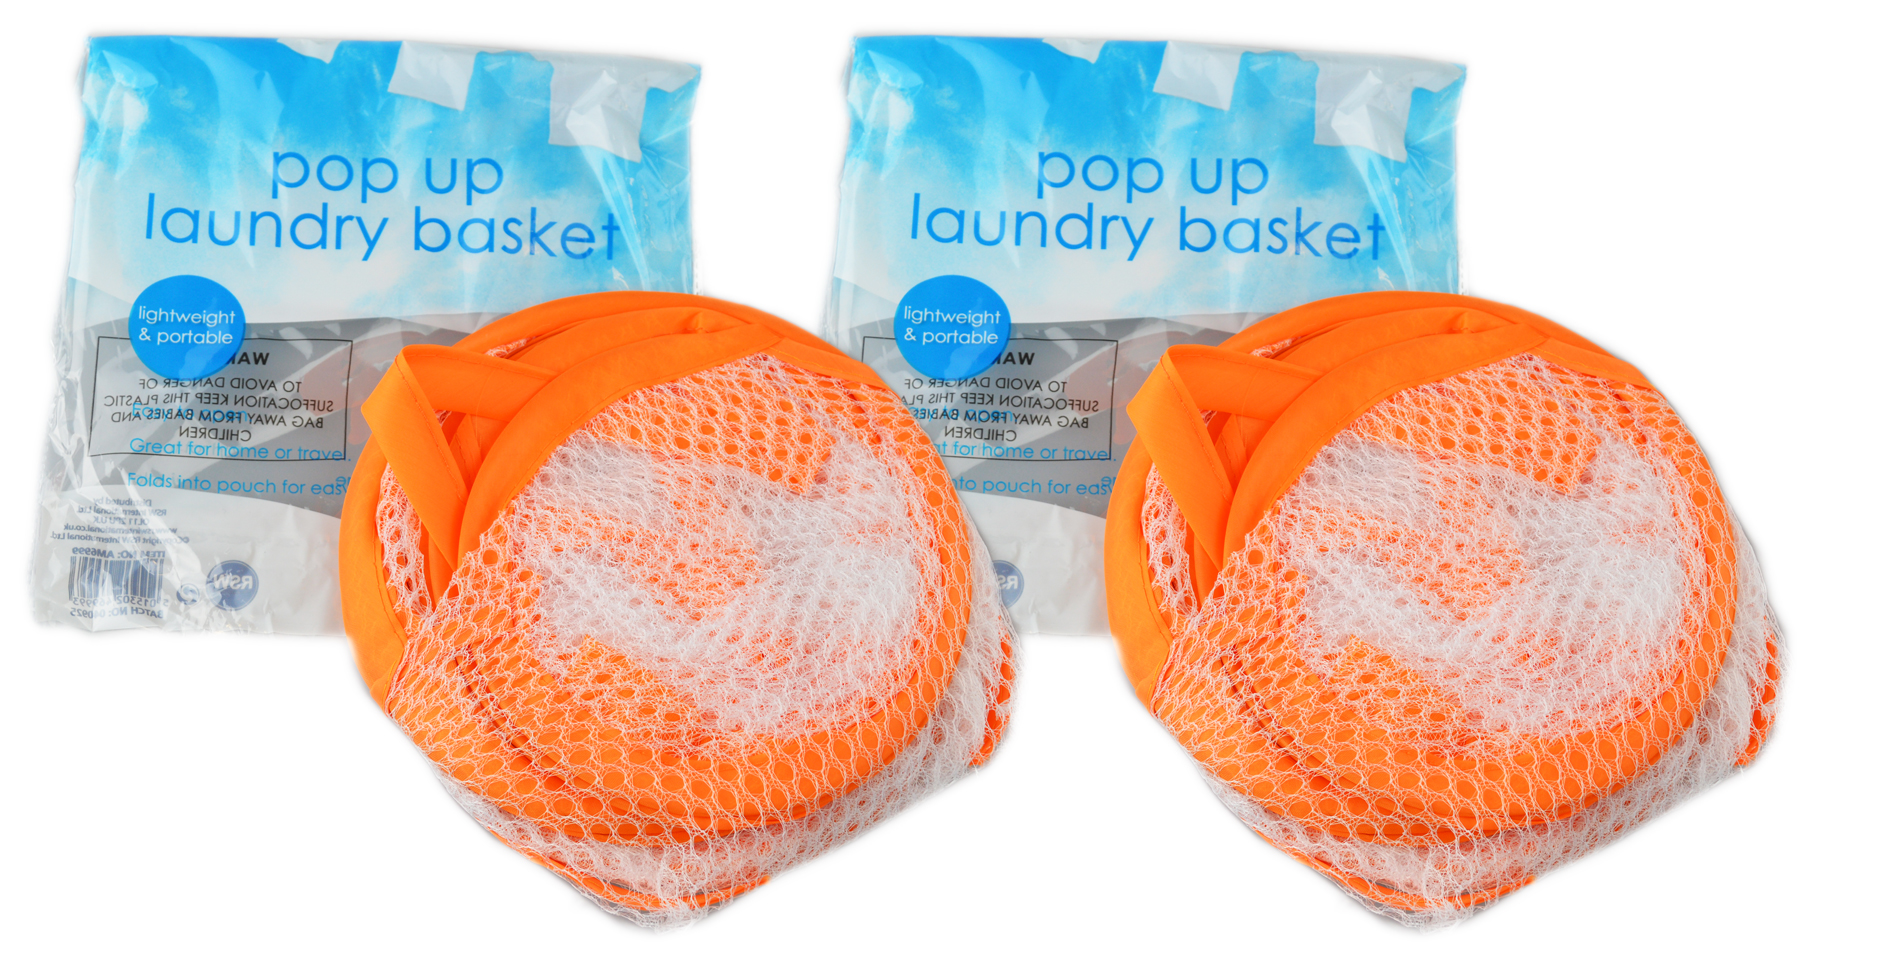 Folding-Mesh-Laundry-Basket-Ideal-for-Home-or-Travel-034-Royle-Home-034 thumbnail 13